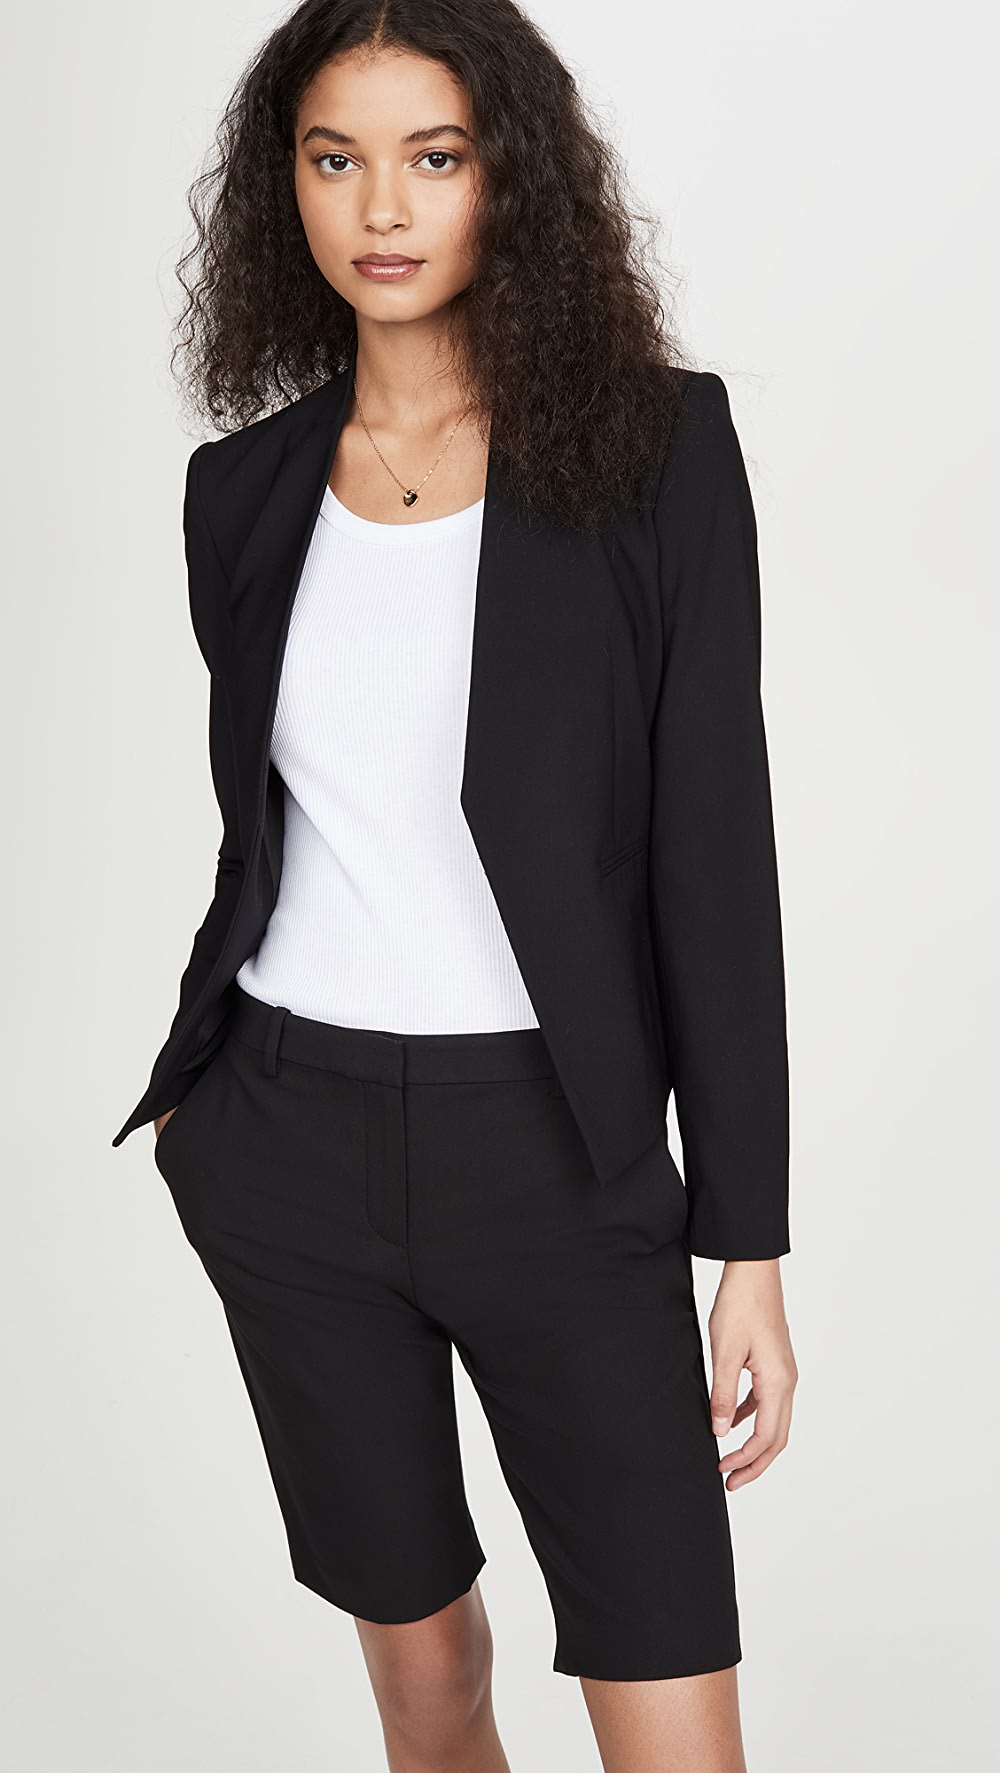 Active Theory - Lanai Blazer Ample Supply And Prompt Delivery